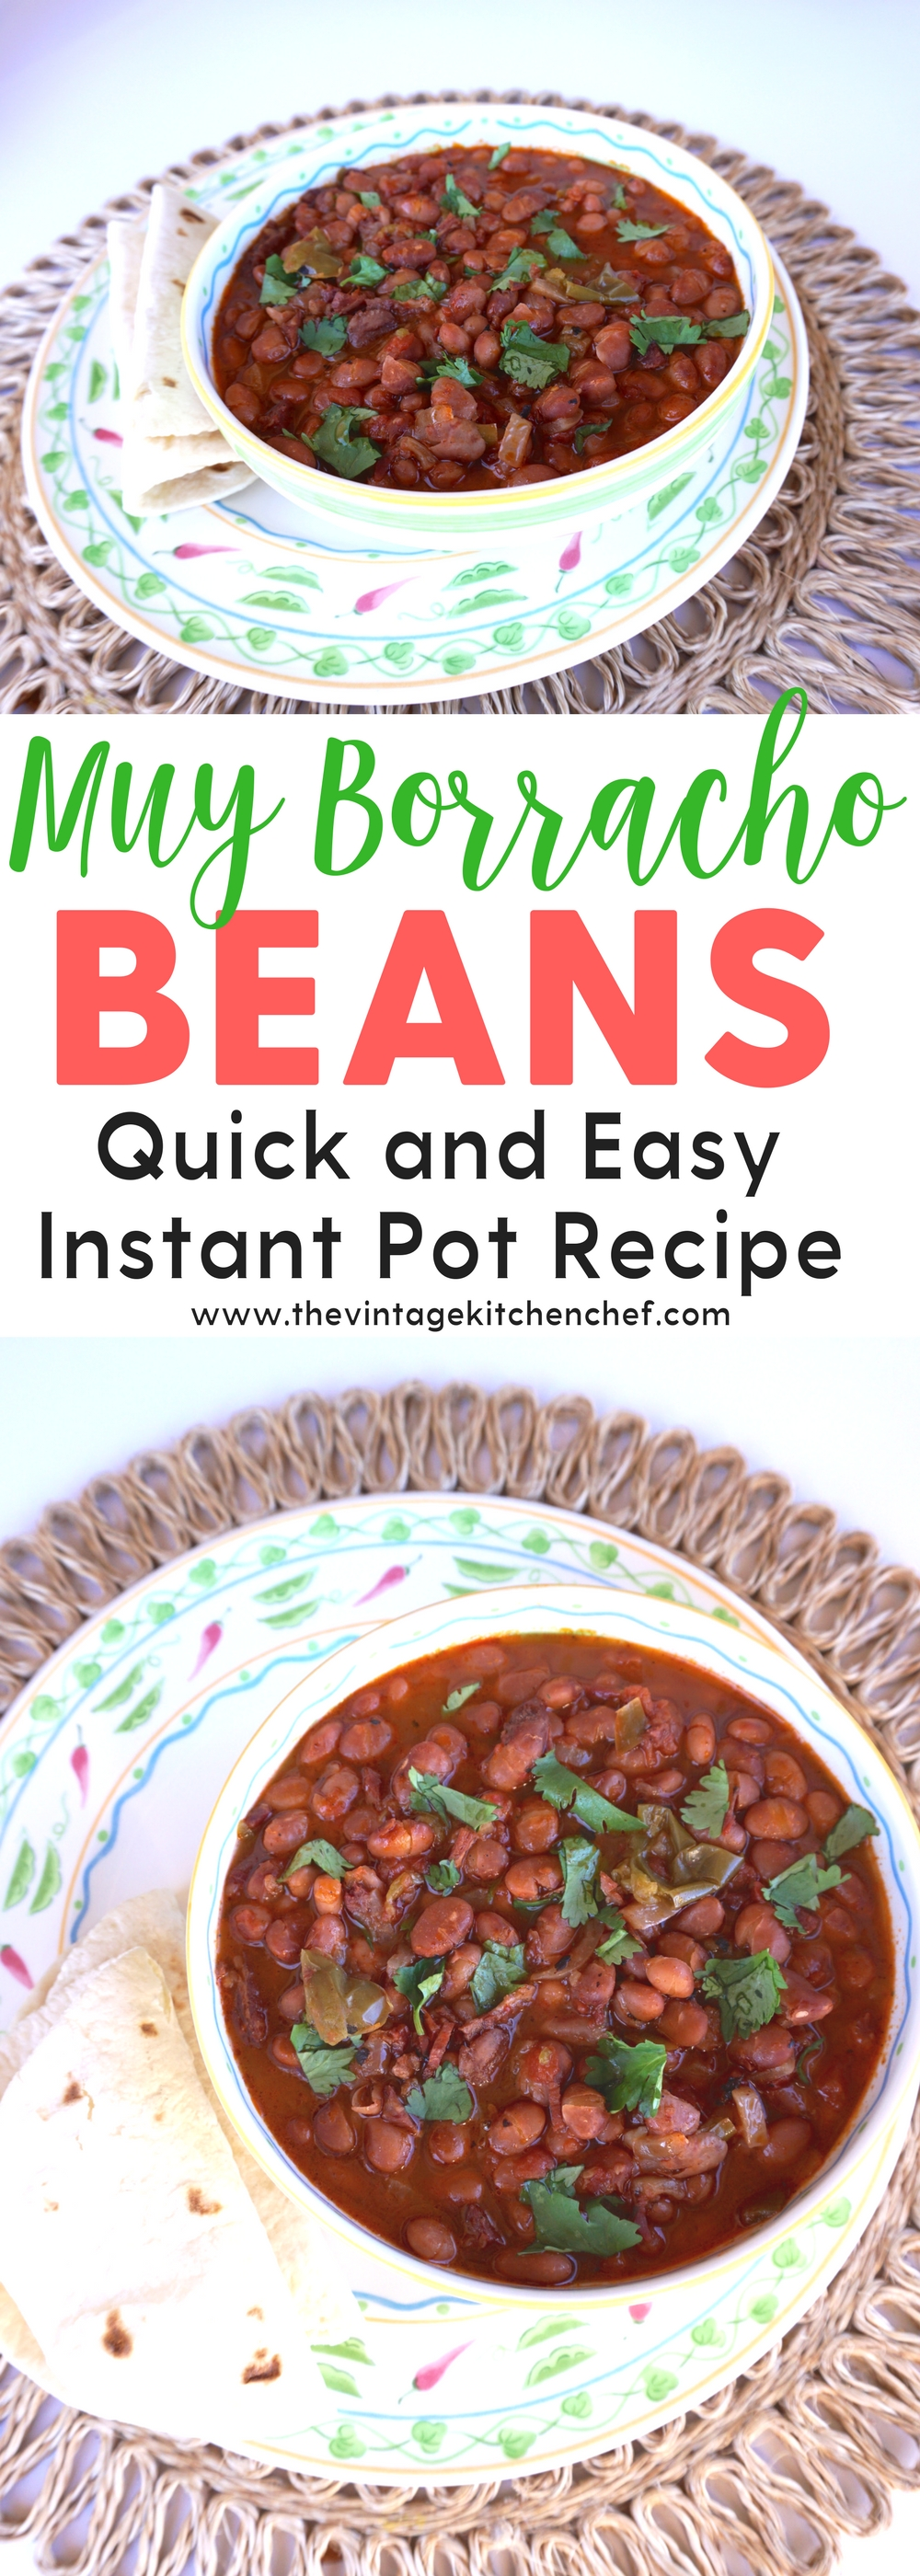 Make these delicious Muy Borracho (very drunk!) beans in your instant pot! They are so flavorful, fast and easy. Sure to be a favorite!